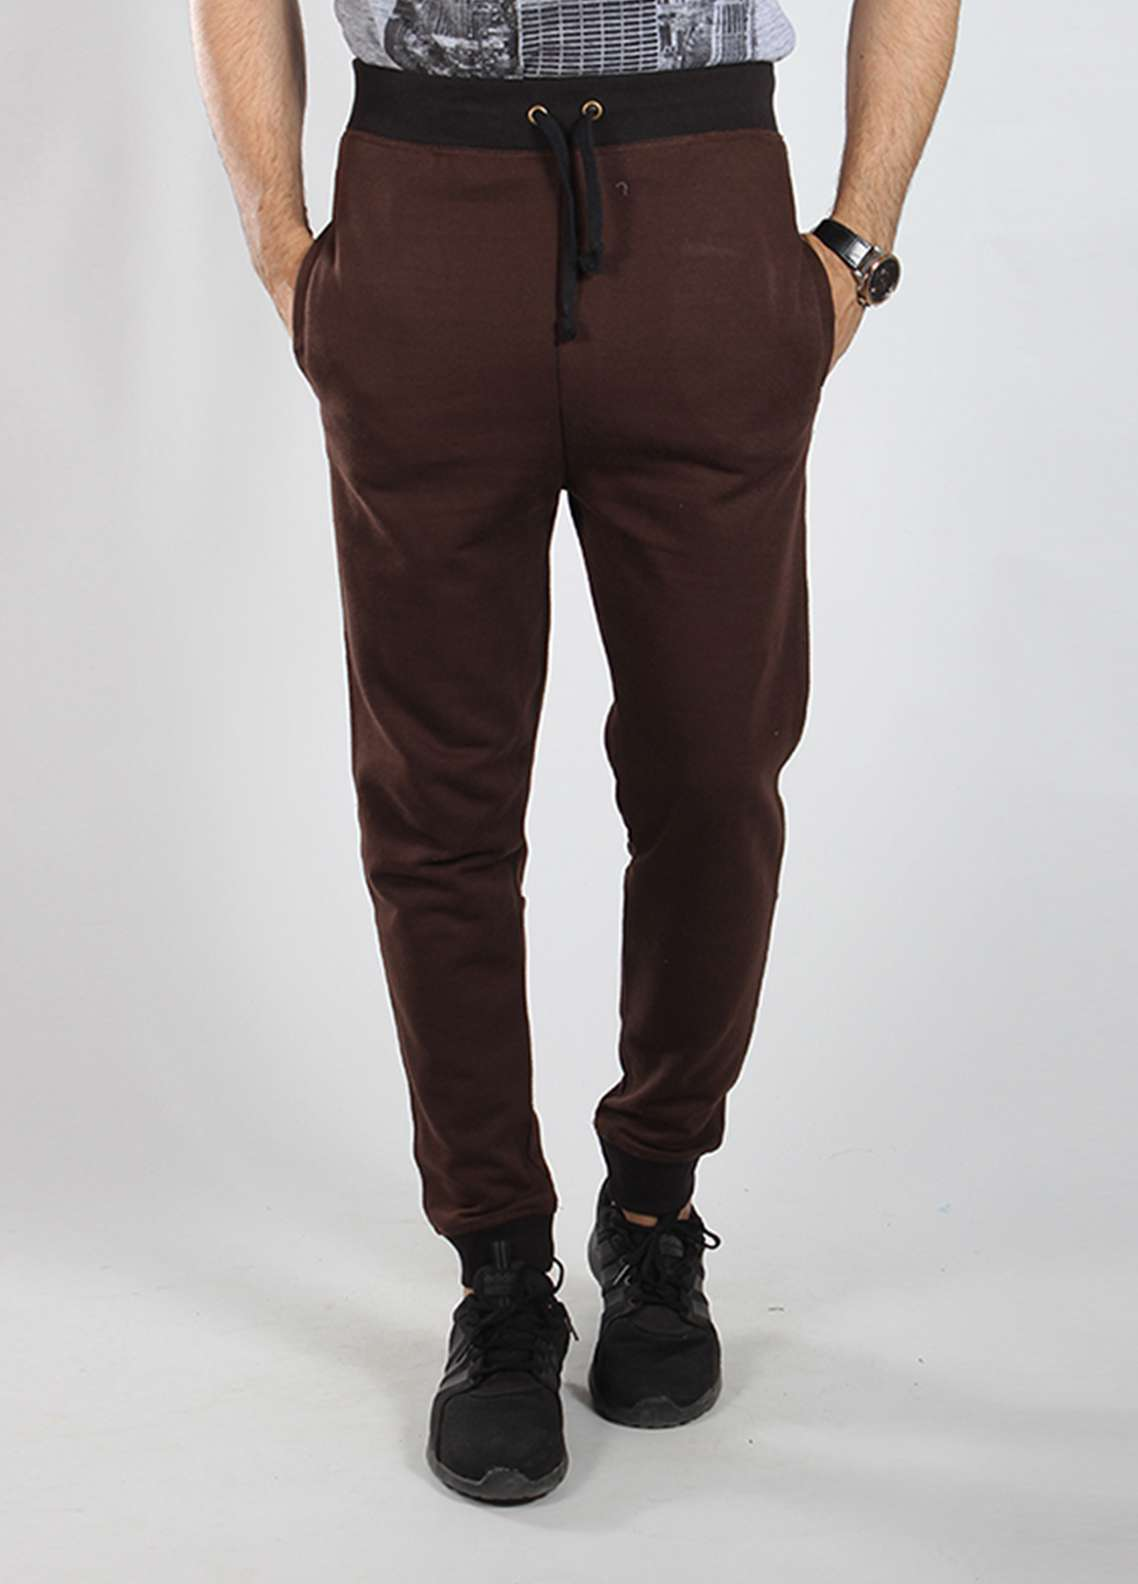 Red Tree Knitted Casual Men Trousers - Brown RTM18TR 6021